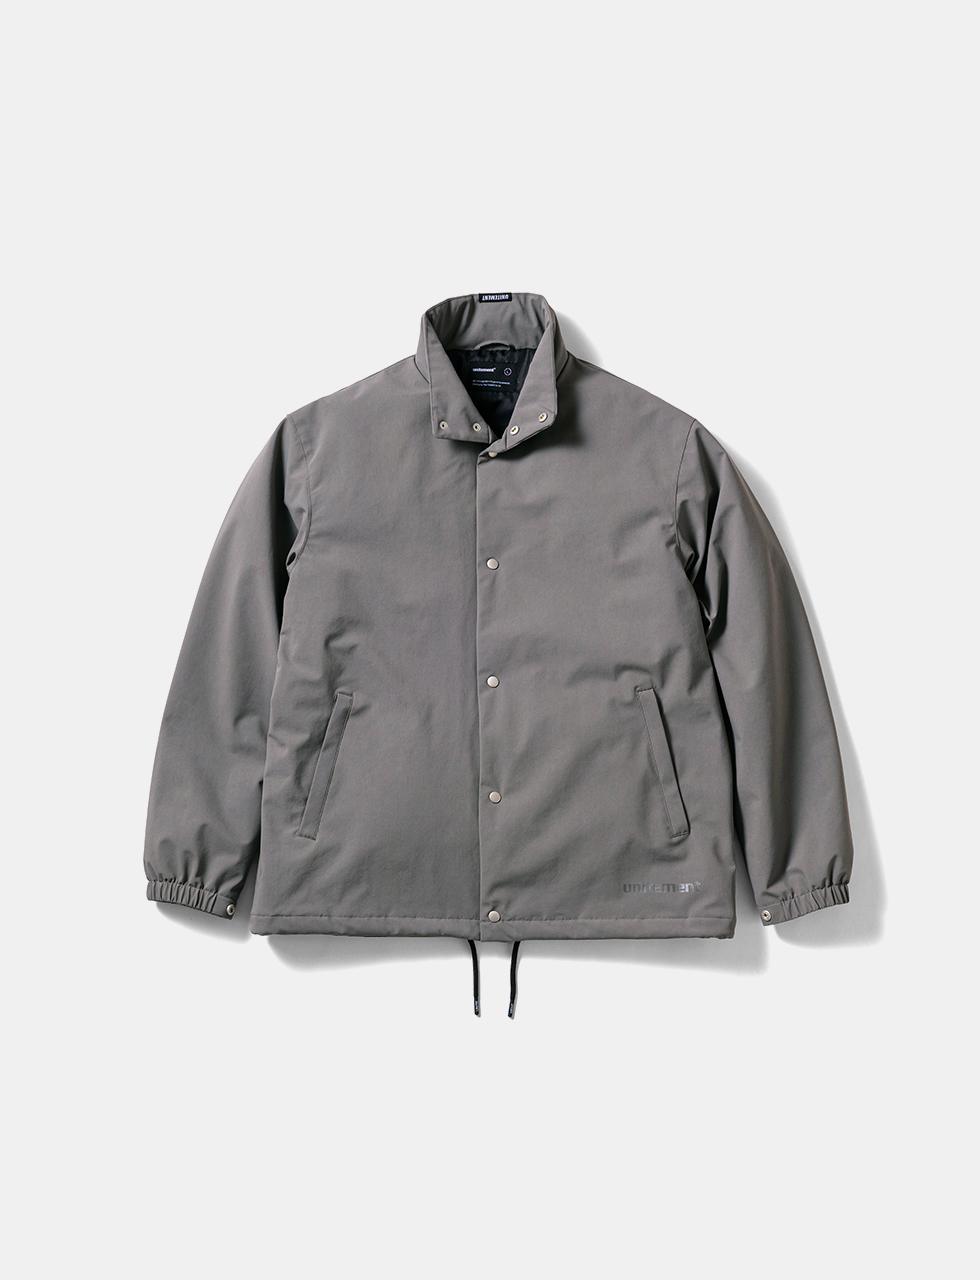 Raised Neck Jacket